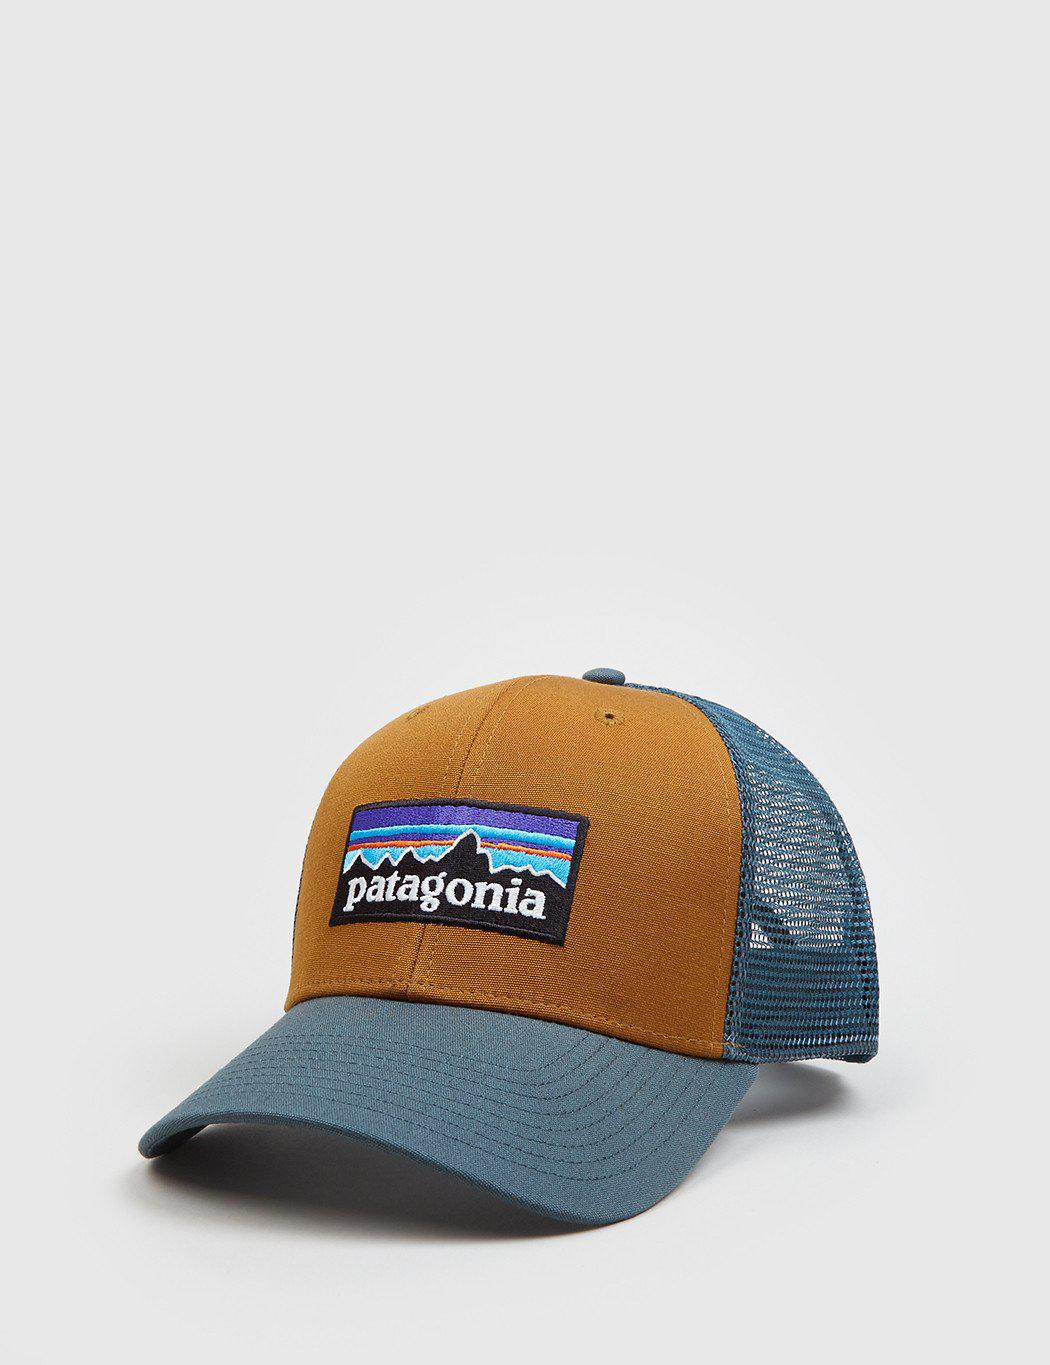 Lyst - Patagonia P-6 Logo Trucker Hat in Blue for Men 9e4ce4a1d73